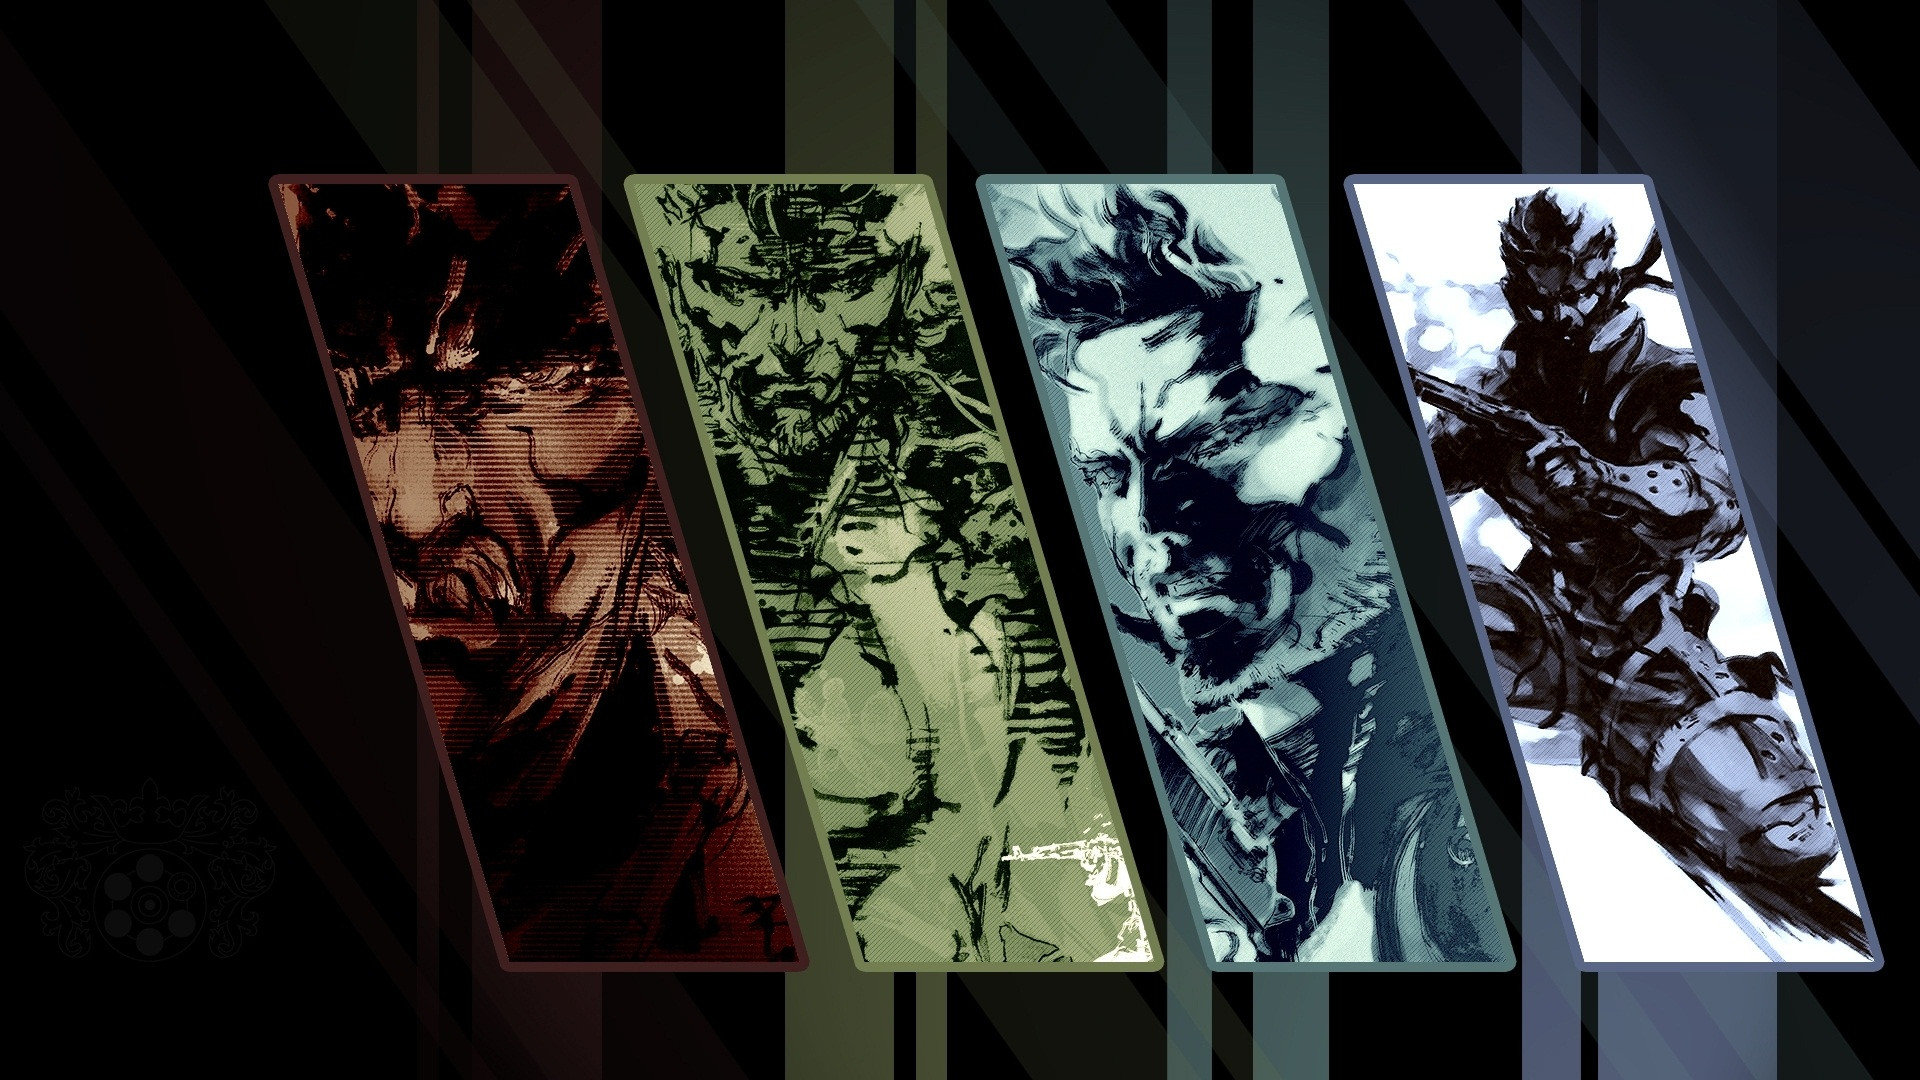 Metal Gear Solid Mgs Wallpapers 1920x1080 Full Hd 1080p